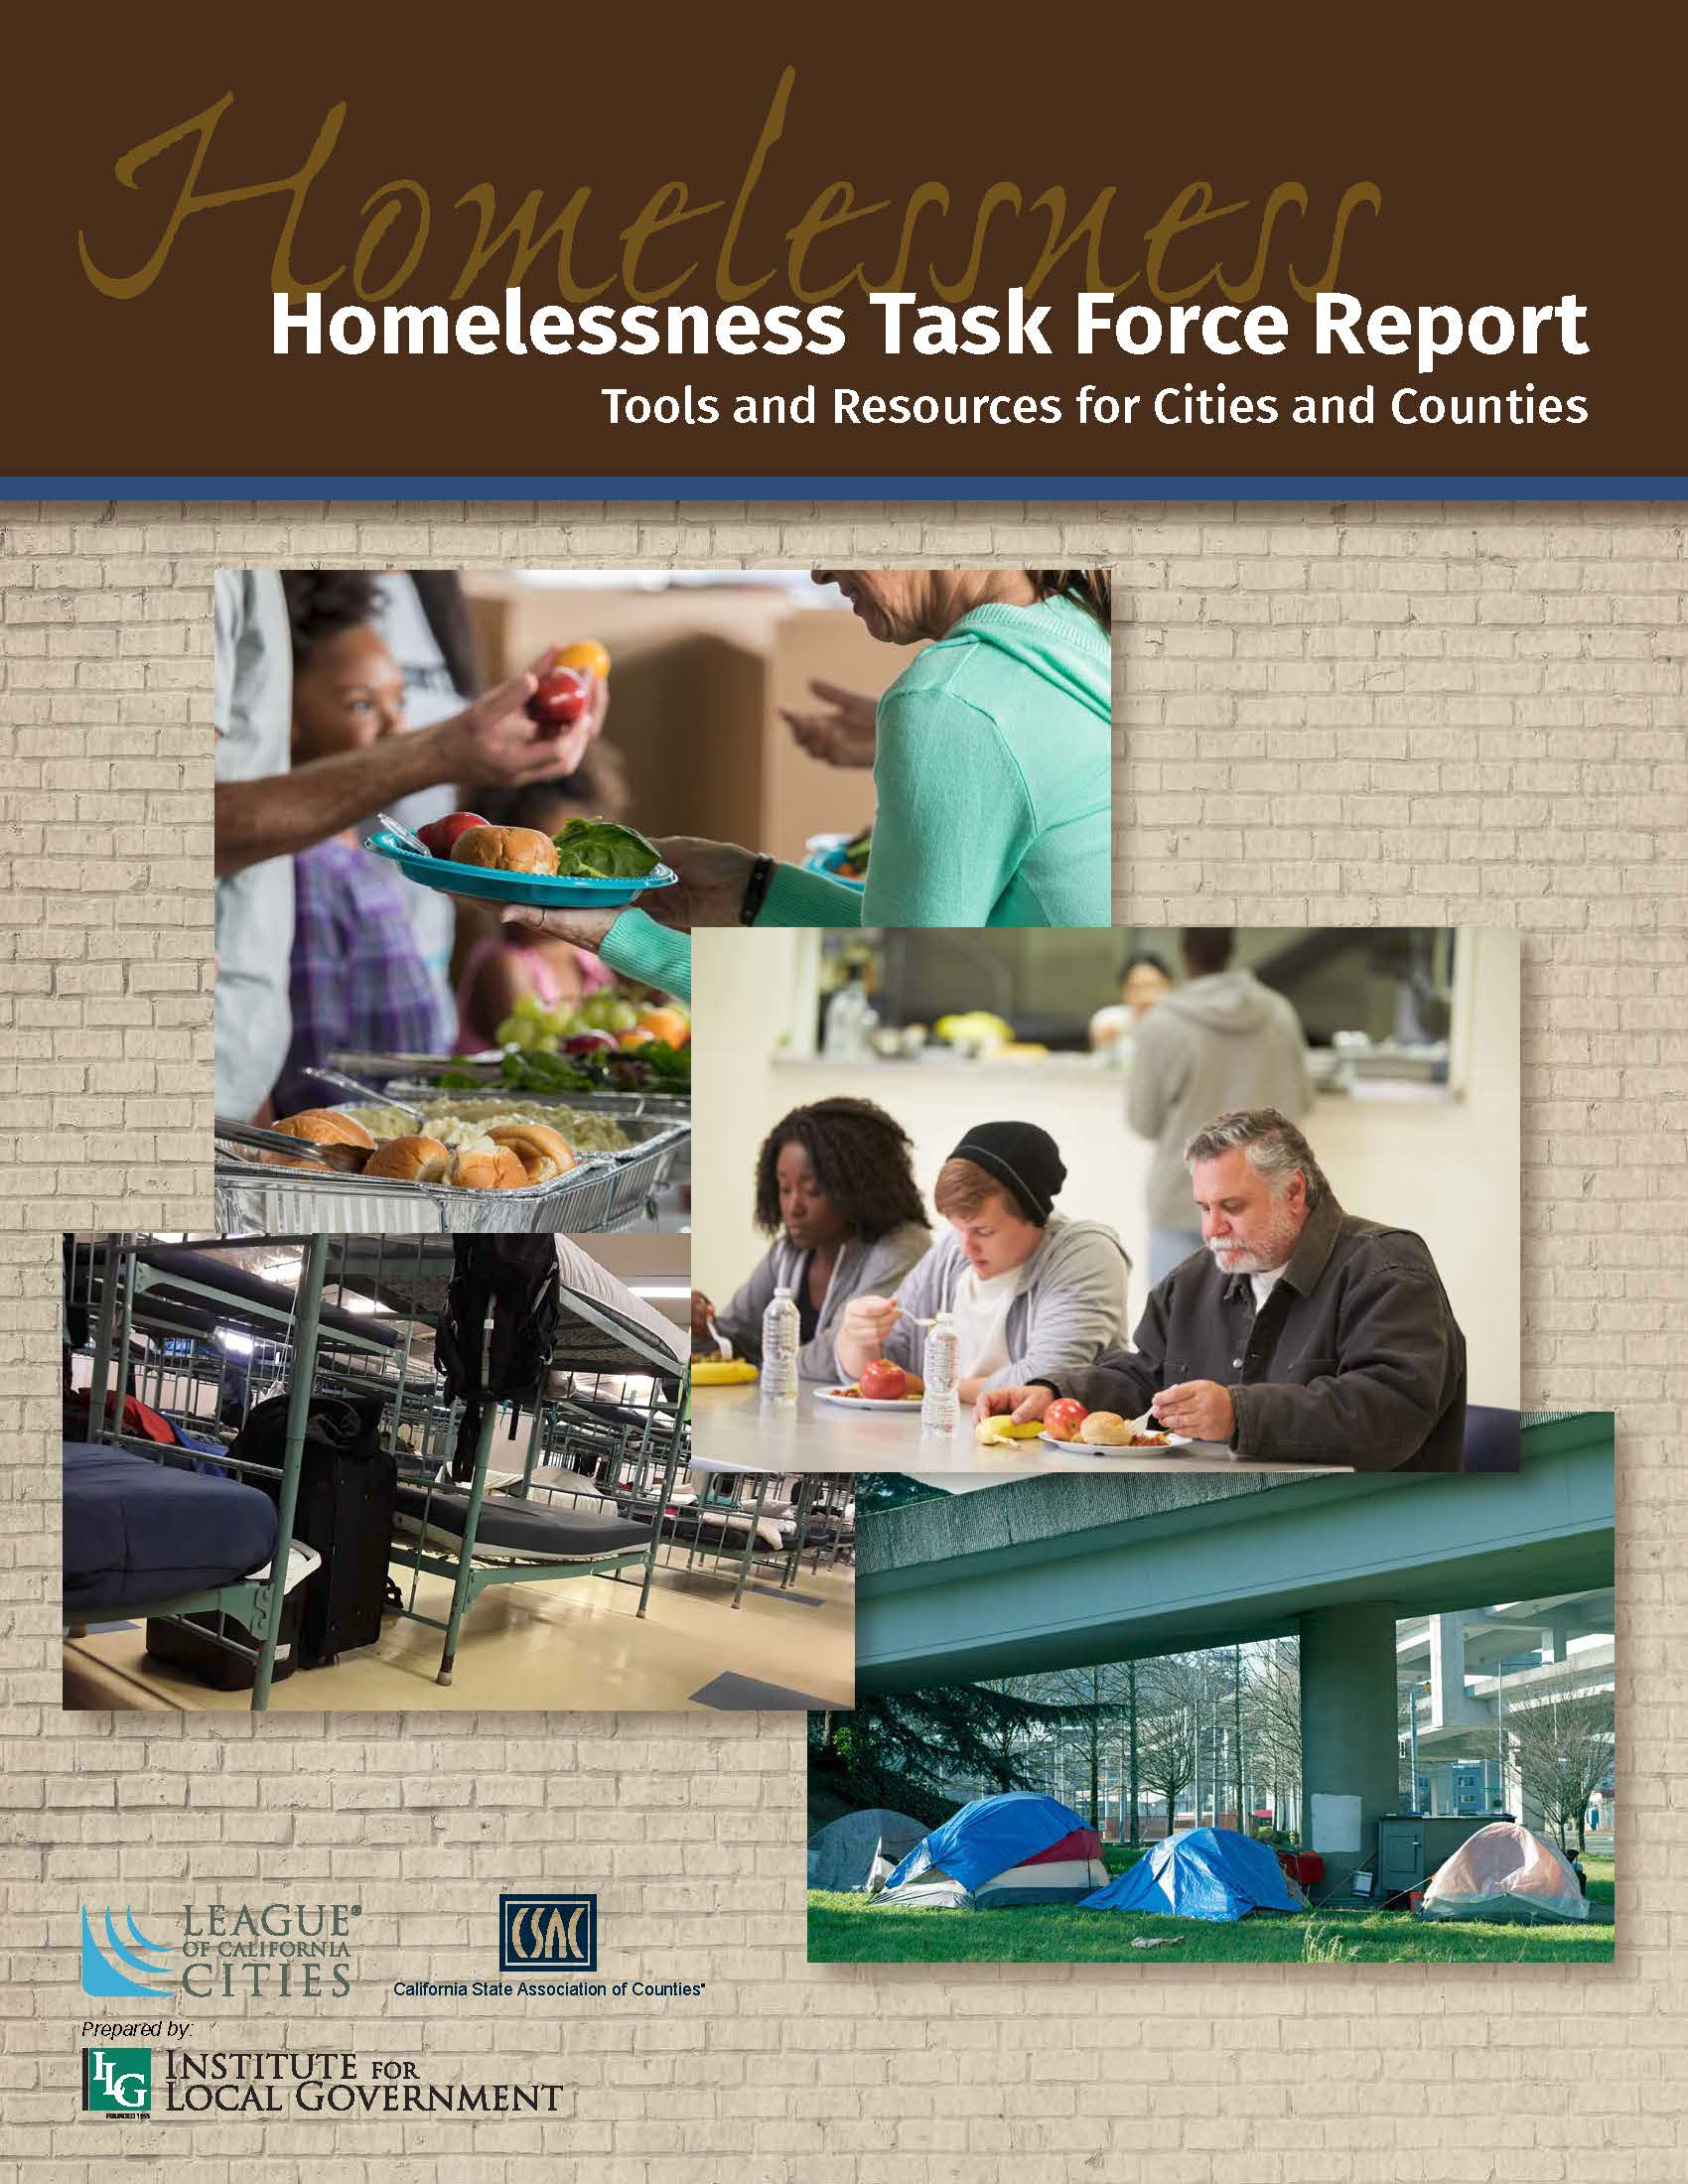 - League of California Cities and California State Association of Counties Joint Homelessness Task Force Report